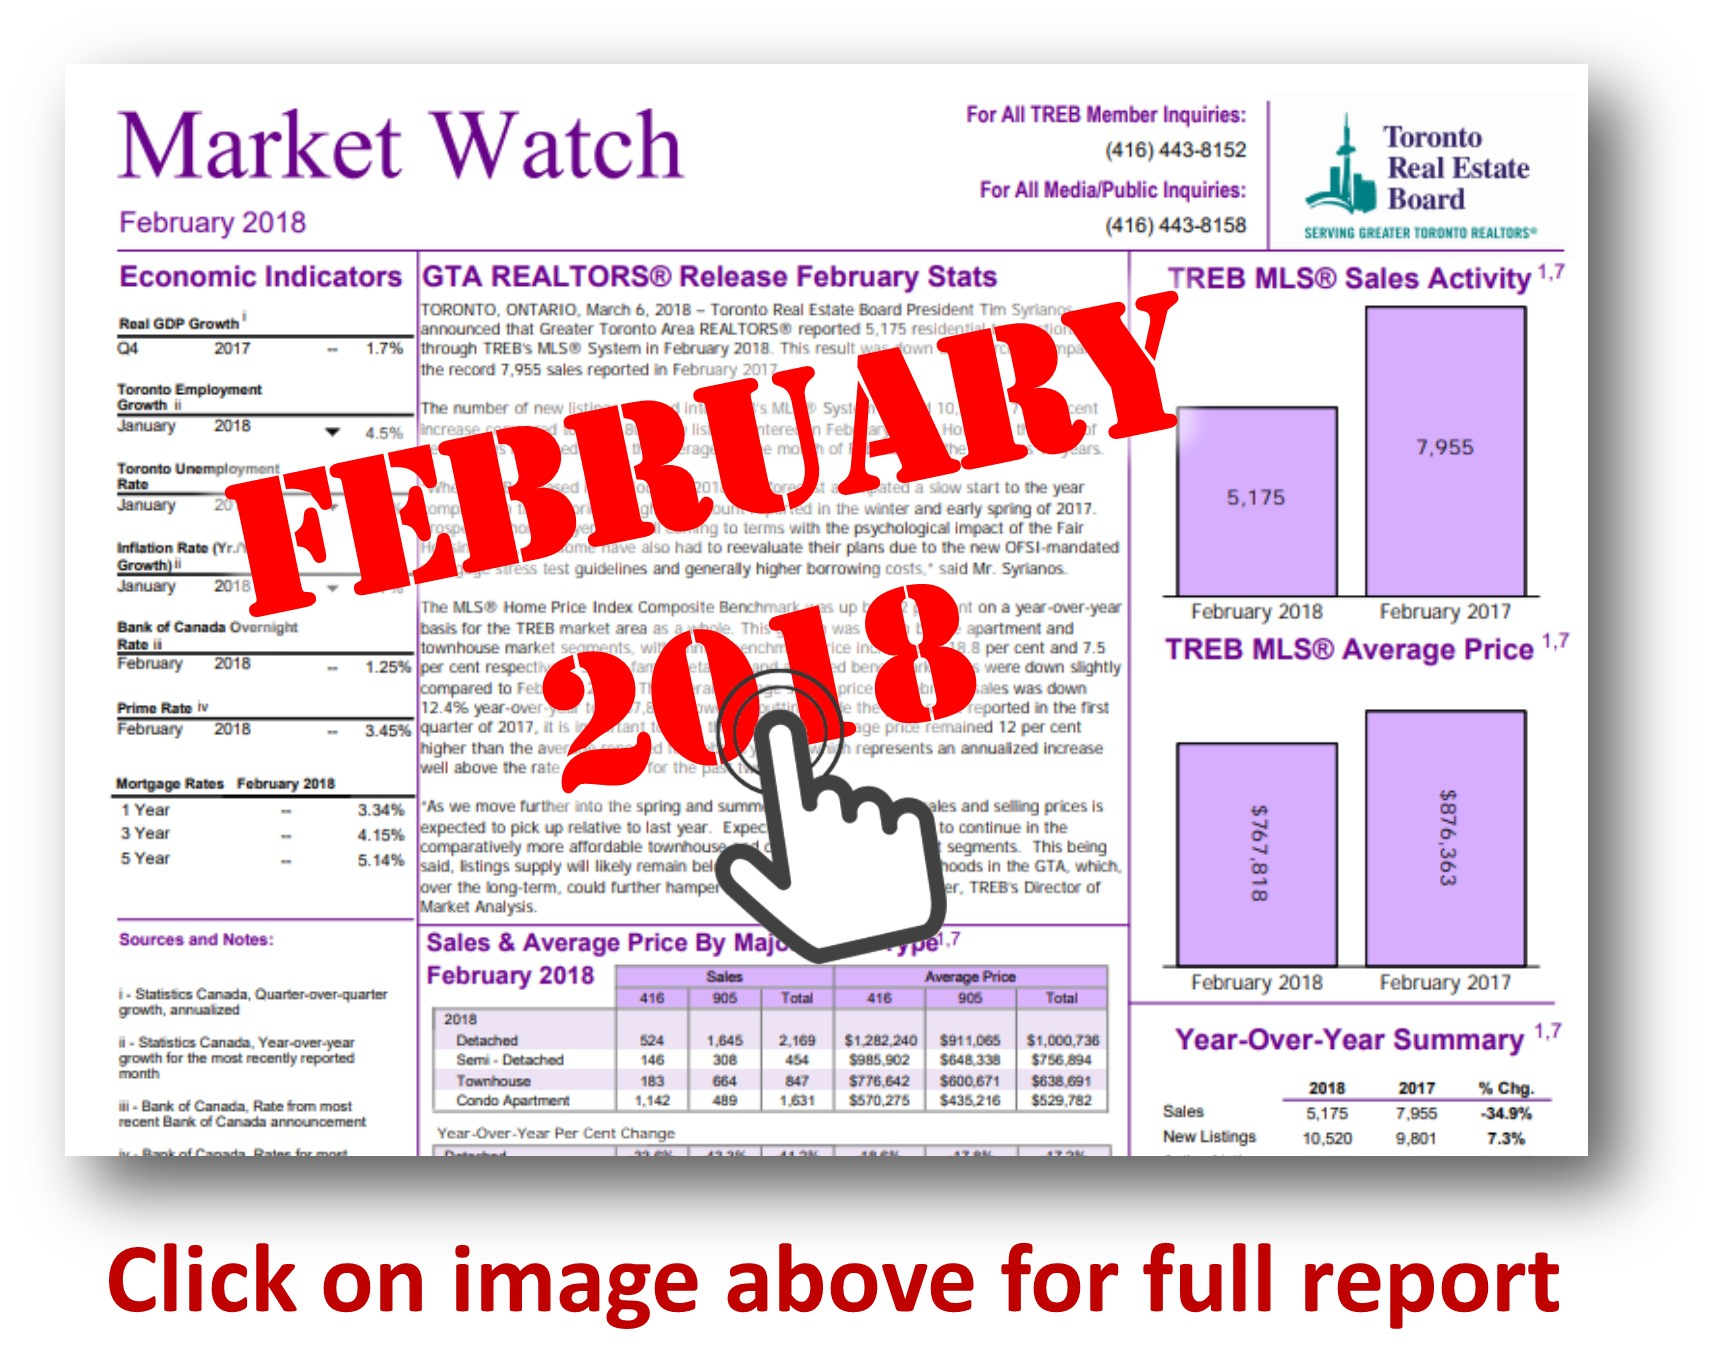 TREB MW FRONT PAGE February 2018.jpg